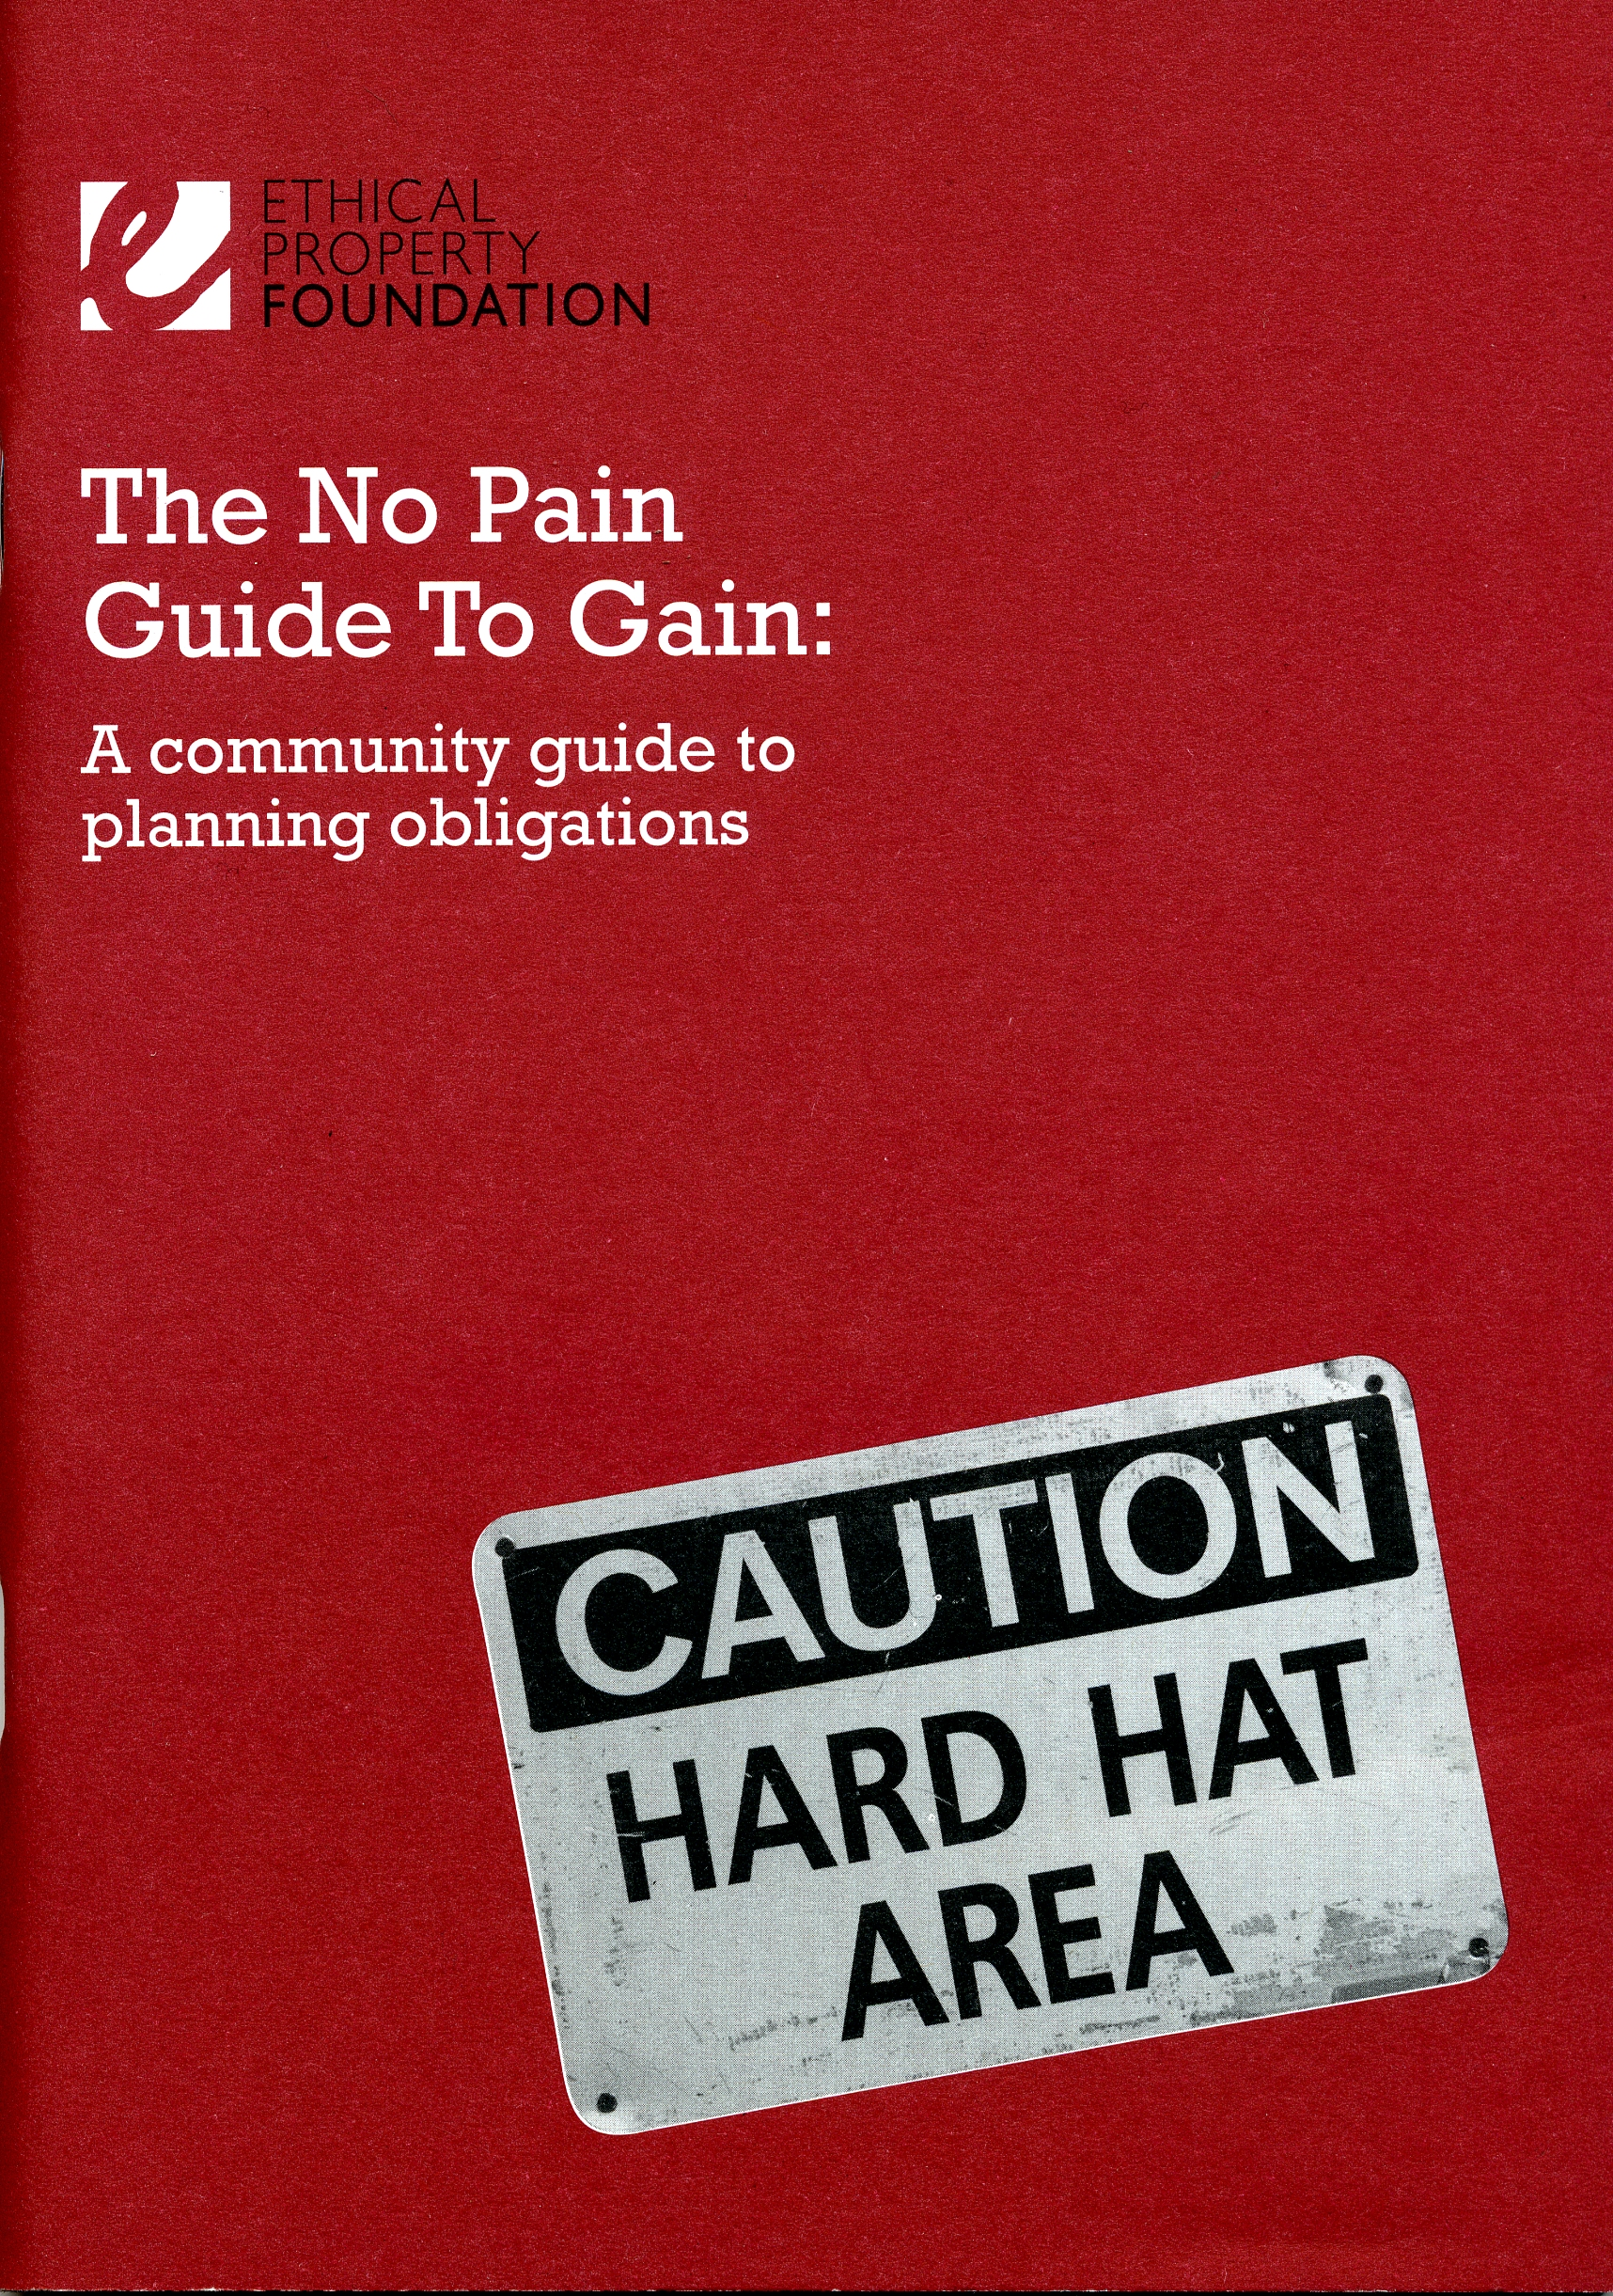 Free No Pain Gain Guide To Gain Download A Community Guide To